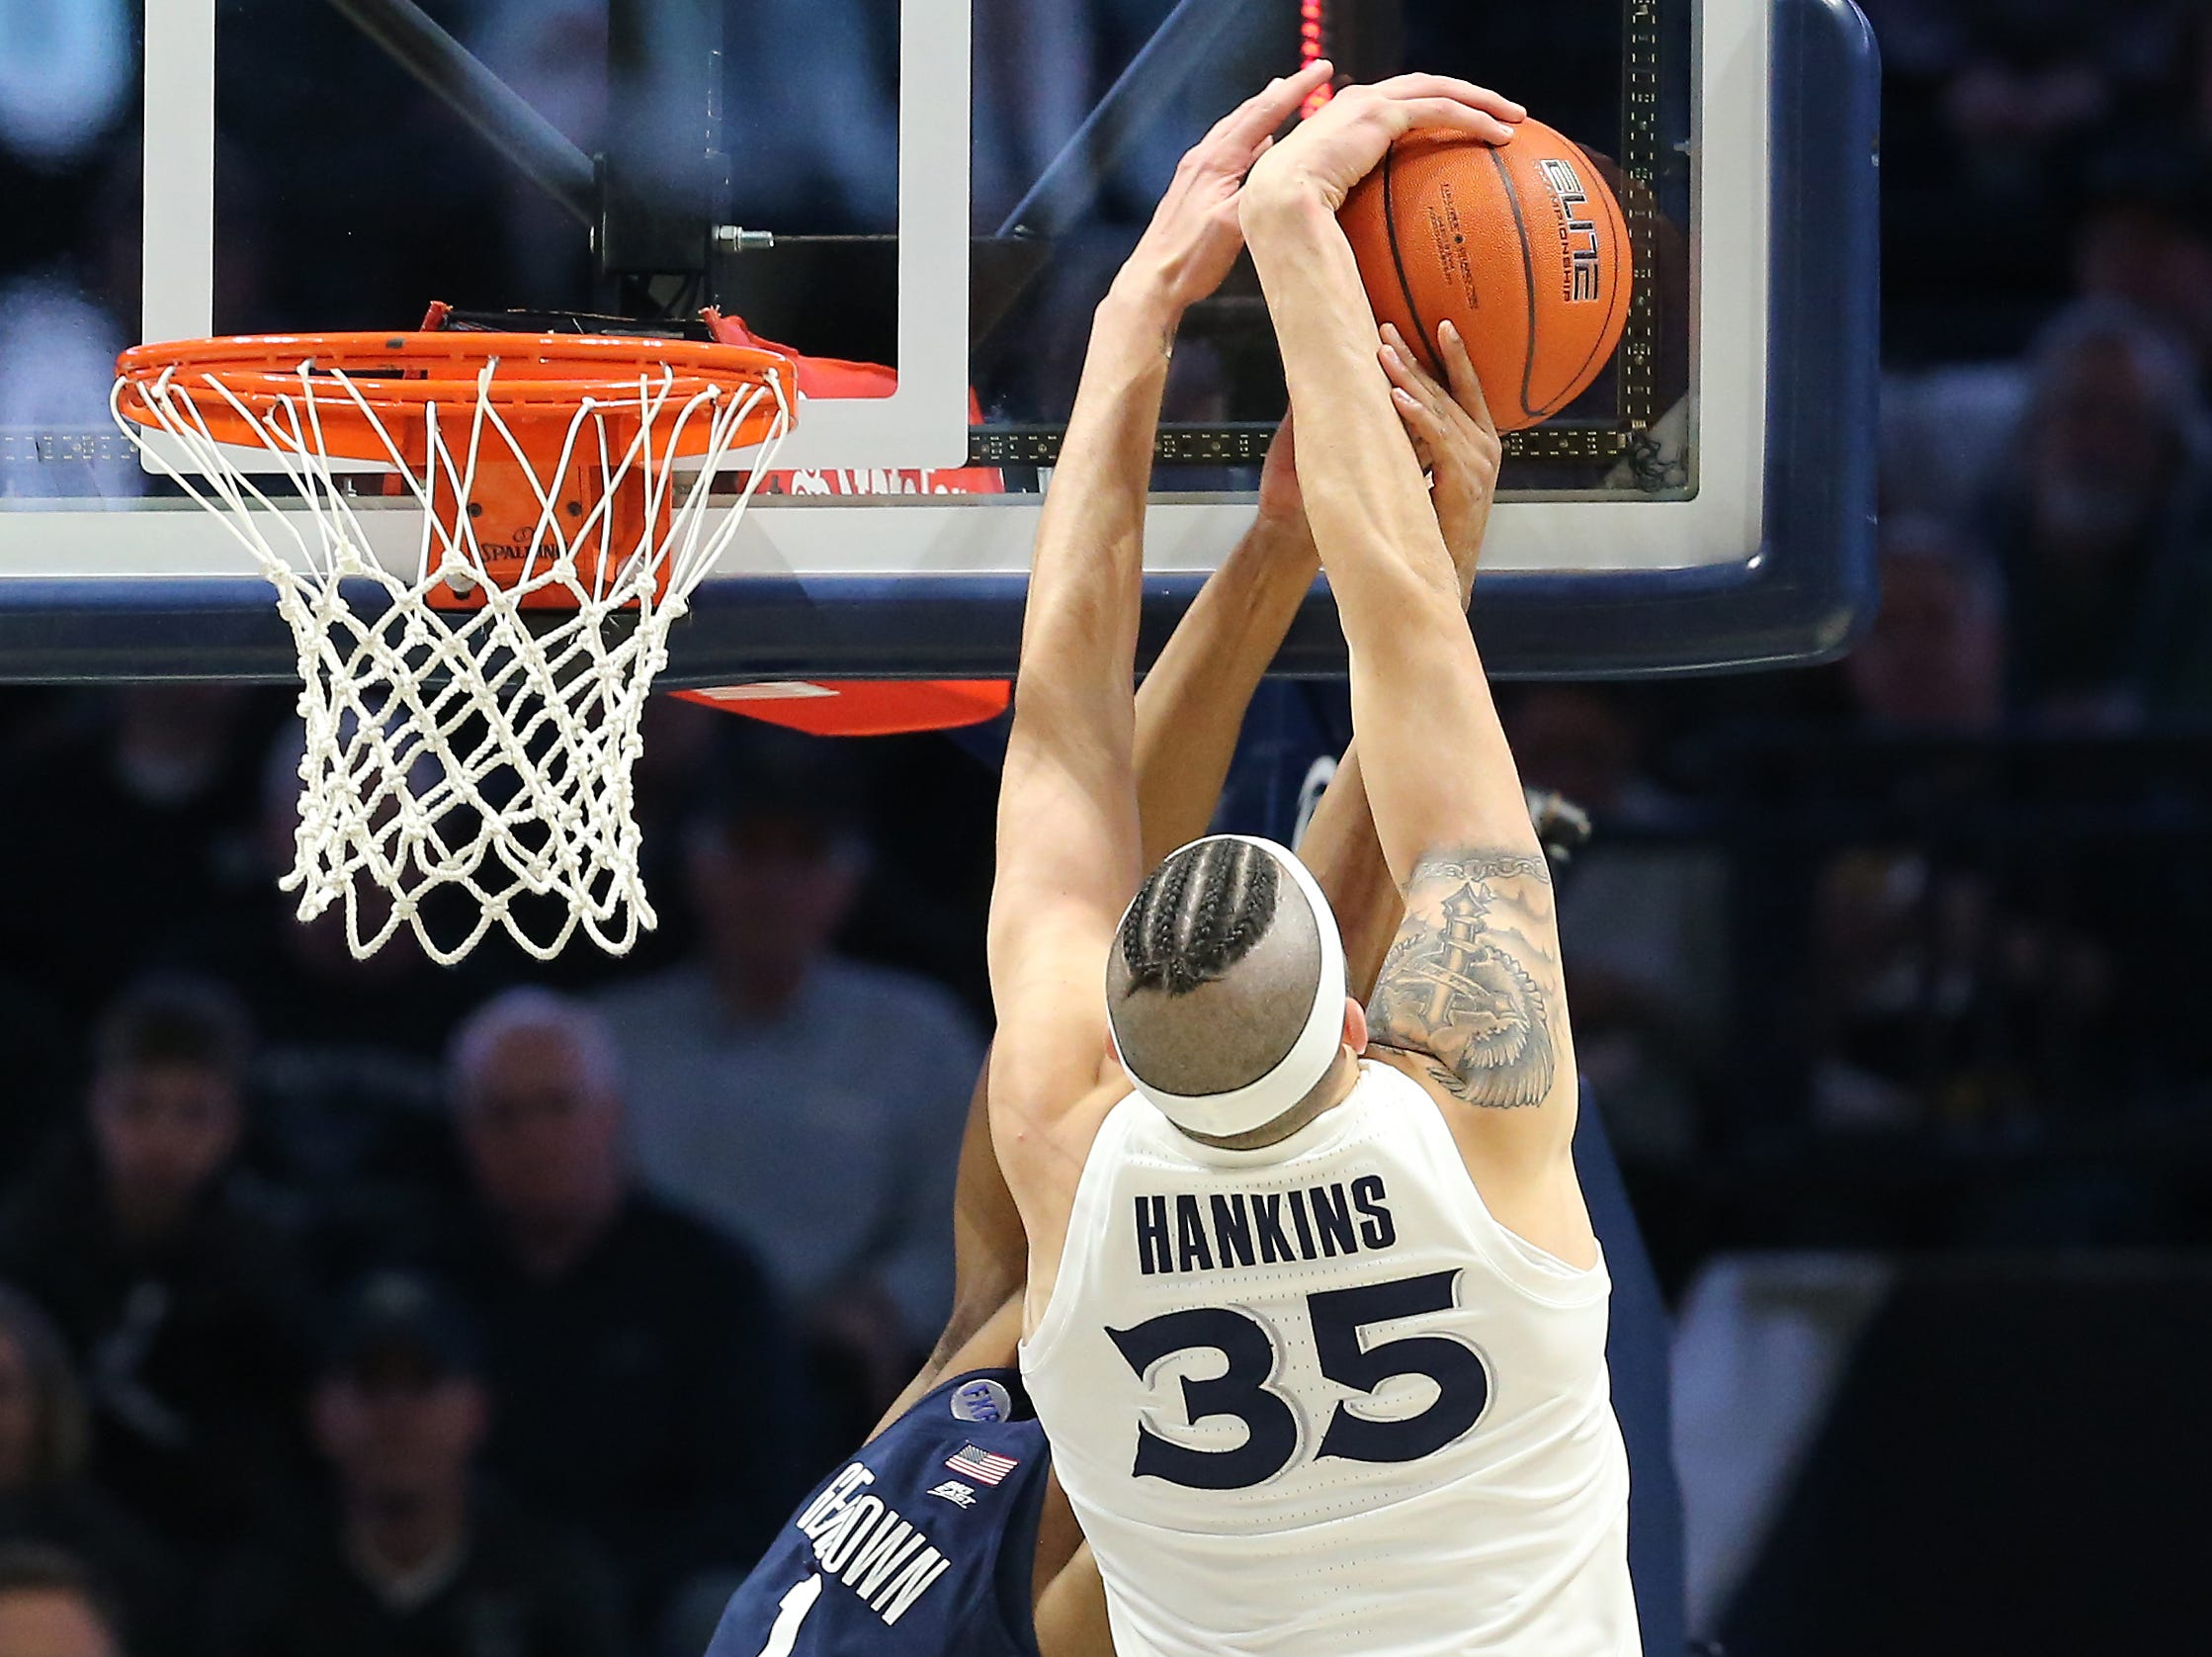 Xavier Musketeers forward Zach Hankins (35) blocks a shot by Georgetown Hoyas guard Jamorko Pickett (1) in the first half of an NCAA basketball game, Wednesday, Jan. 9, 2019, at the Cintas Center in Cincinnati.